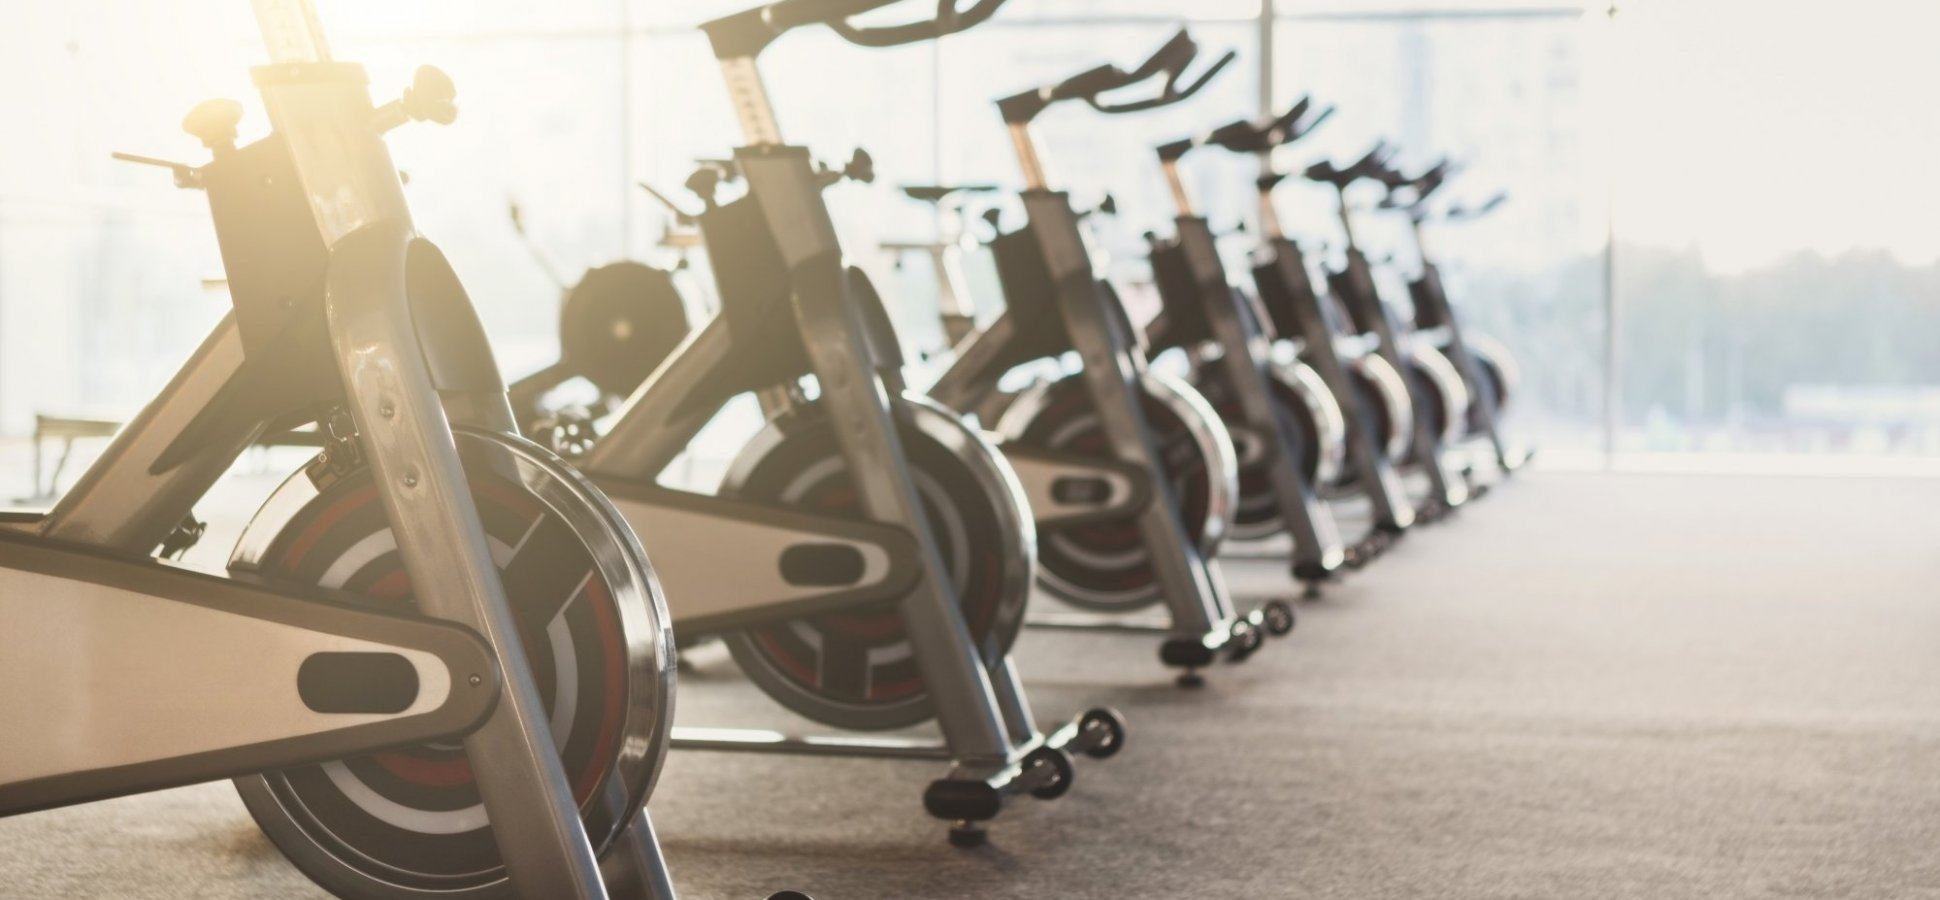 Virtual Fitness Is Disrupting the Fitness Industry. Here's What It Teaches About Disrupting Any Industry